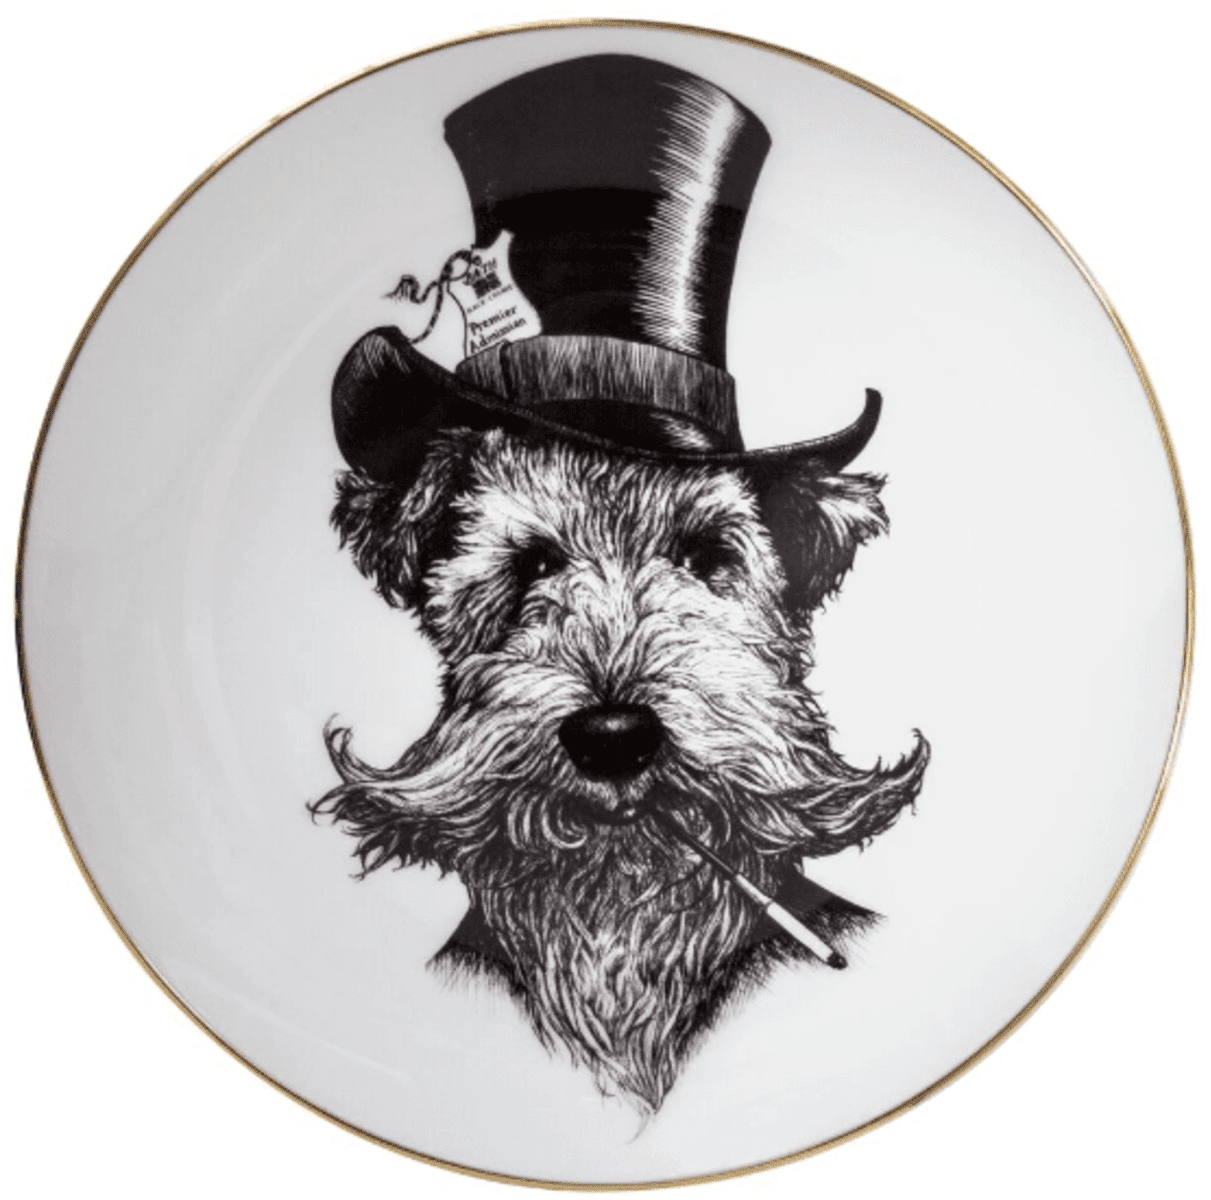 Sir Lancelot Dog Plate Coaster